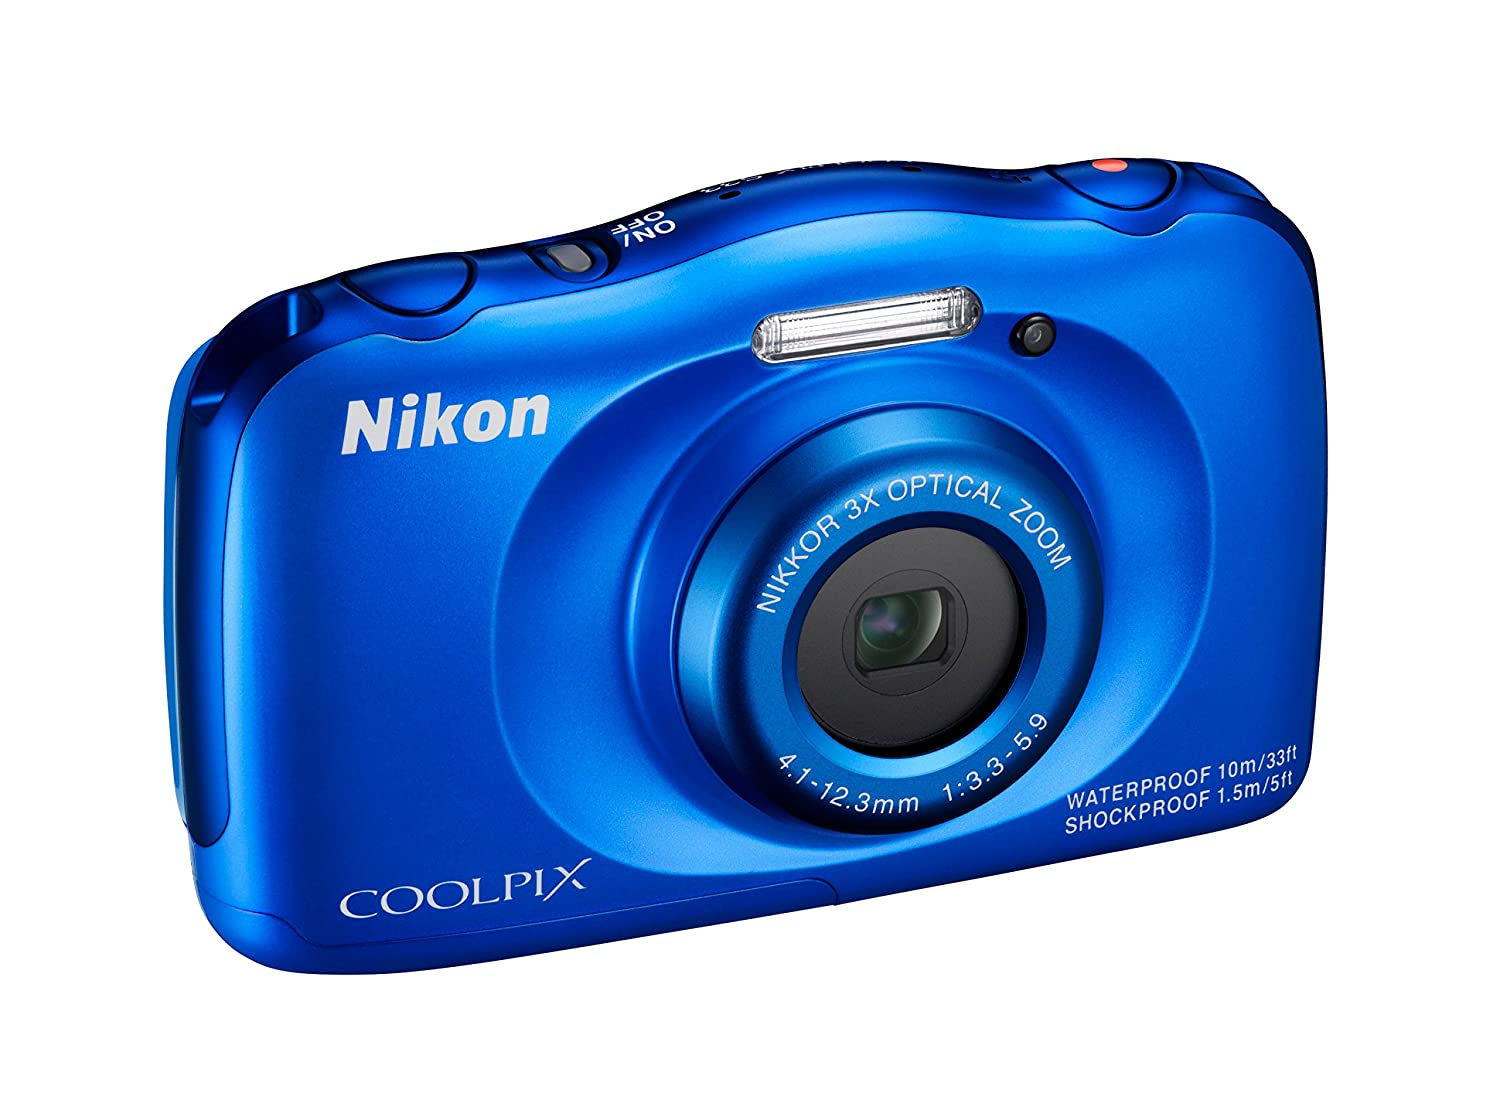 Which digital camera under ?60 would be suitable for this?